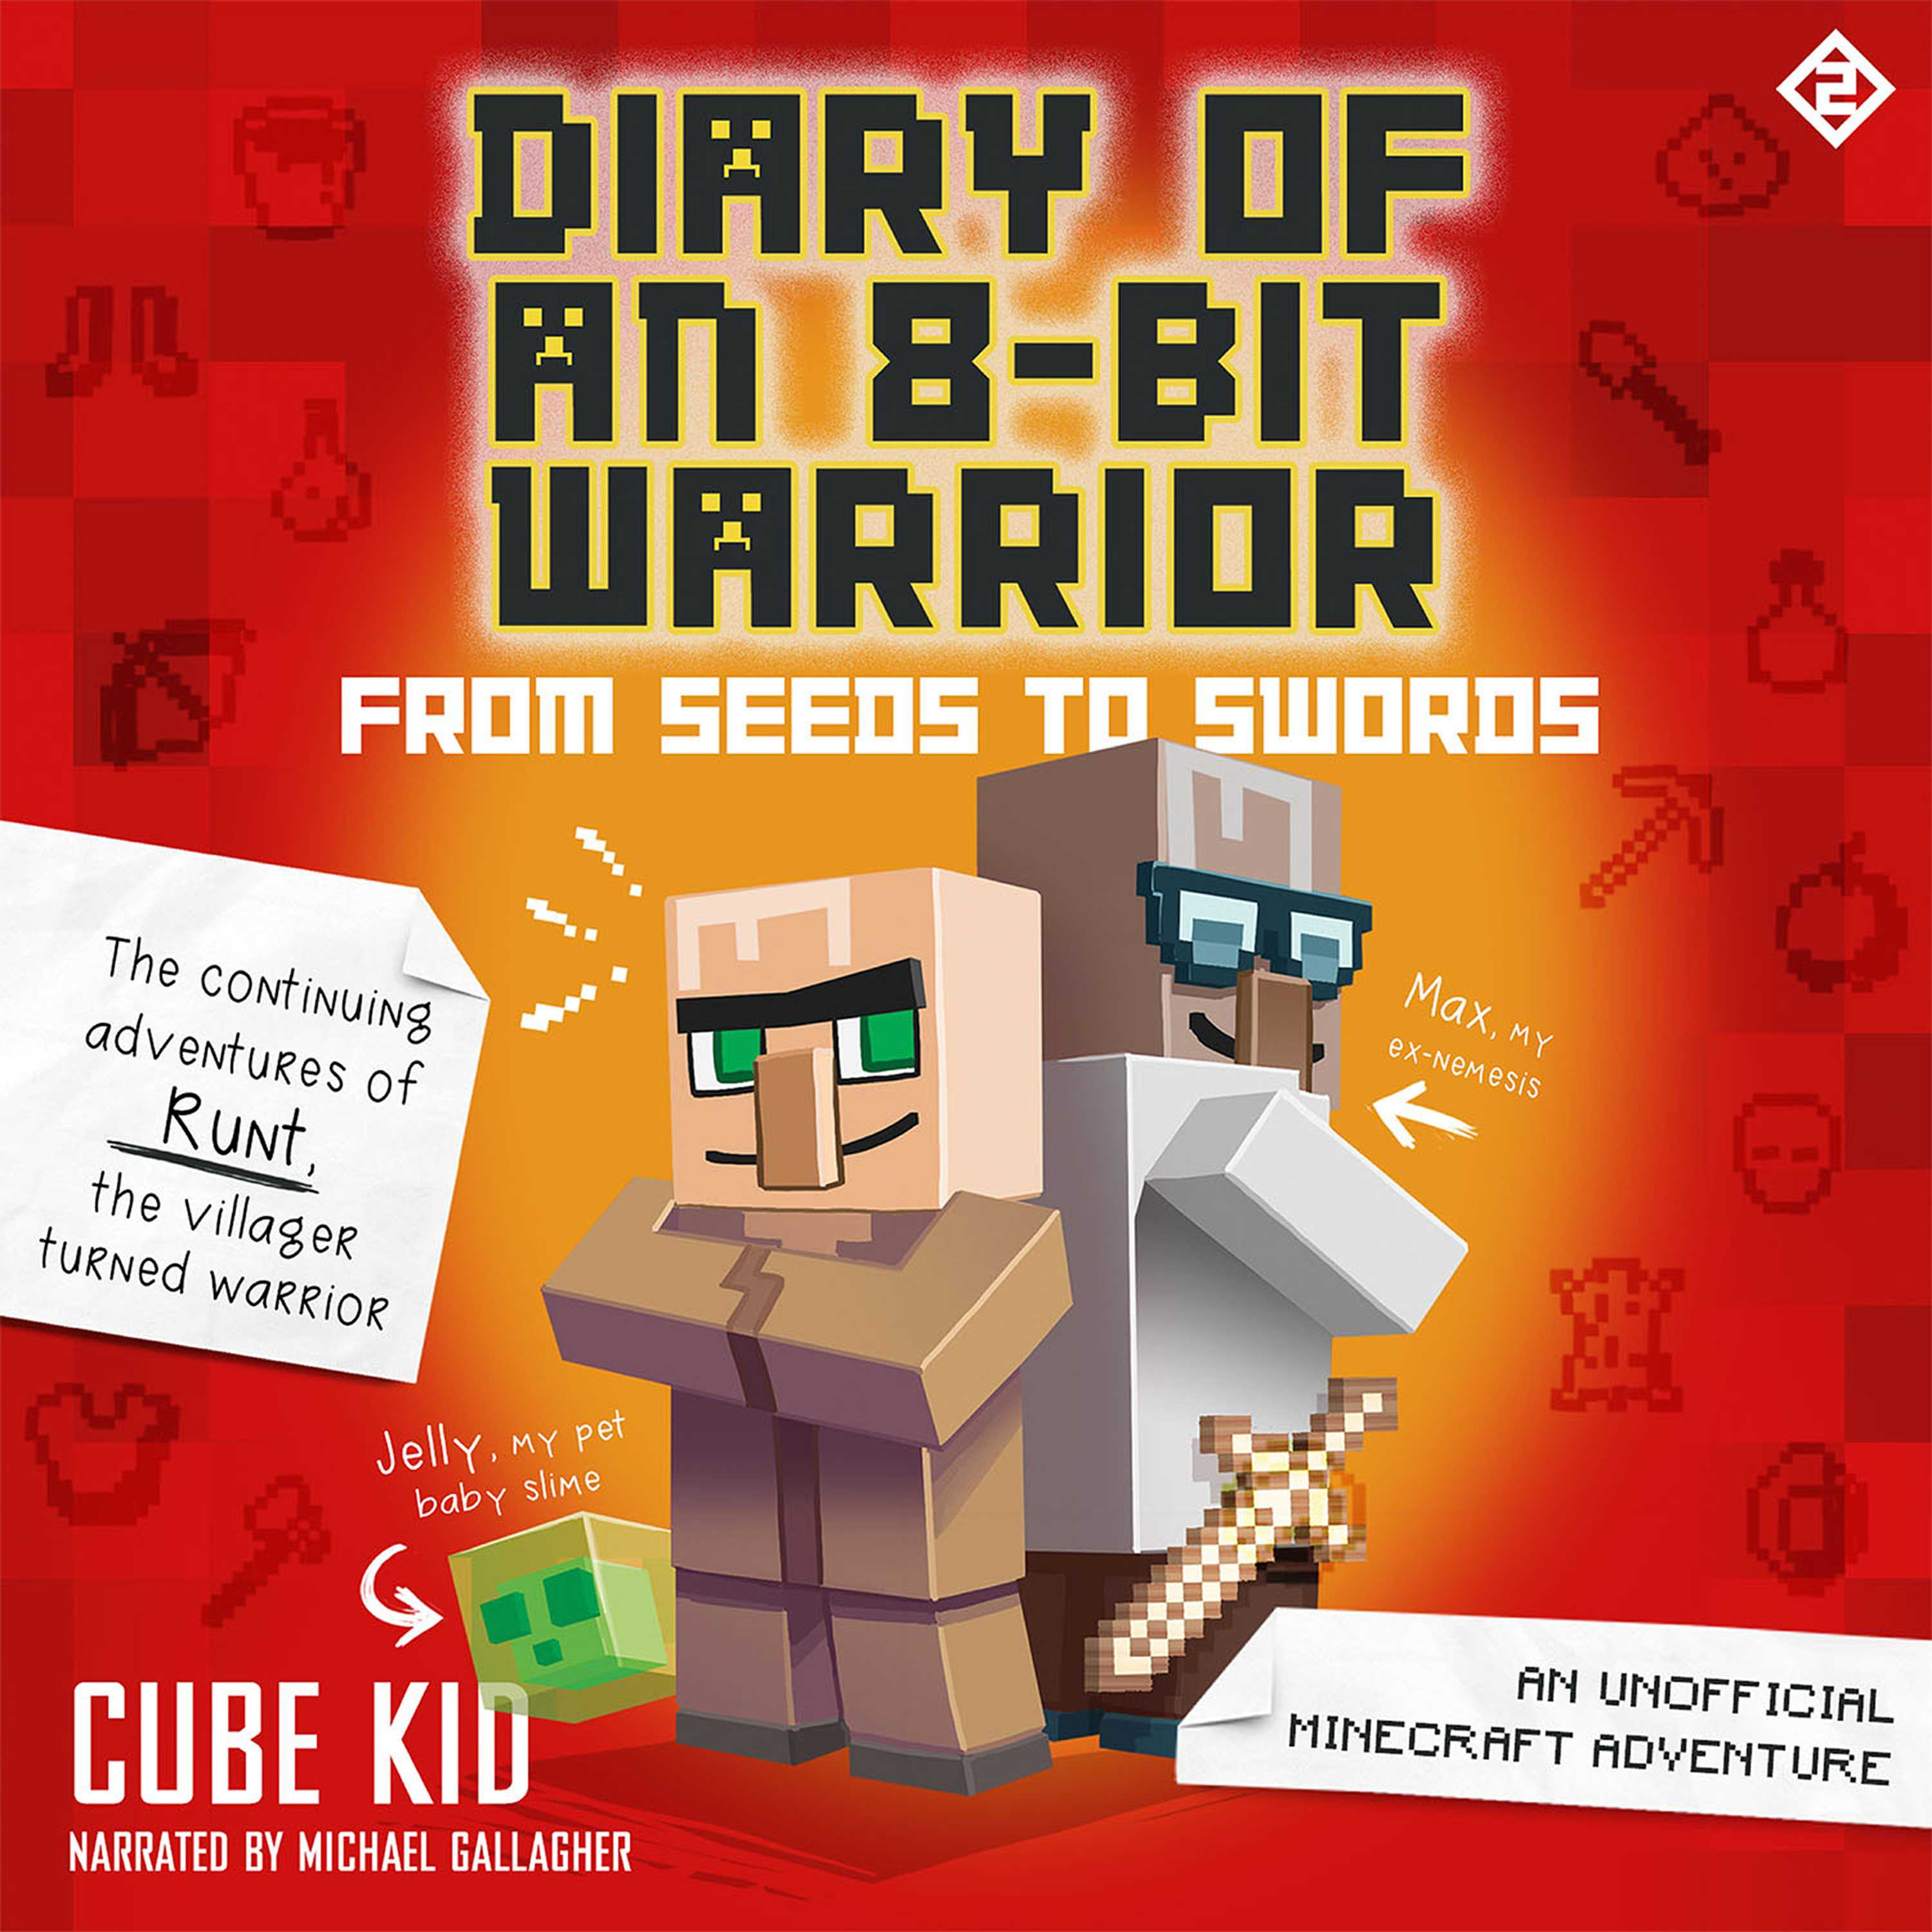 Diary Of An 8 Bit Warrior From Seeds To Swords Book 2 8 Bit Warrior Series Audiobook By Cube Kid Michael Gallagher Official Publisher Page Simon Schuster